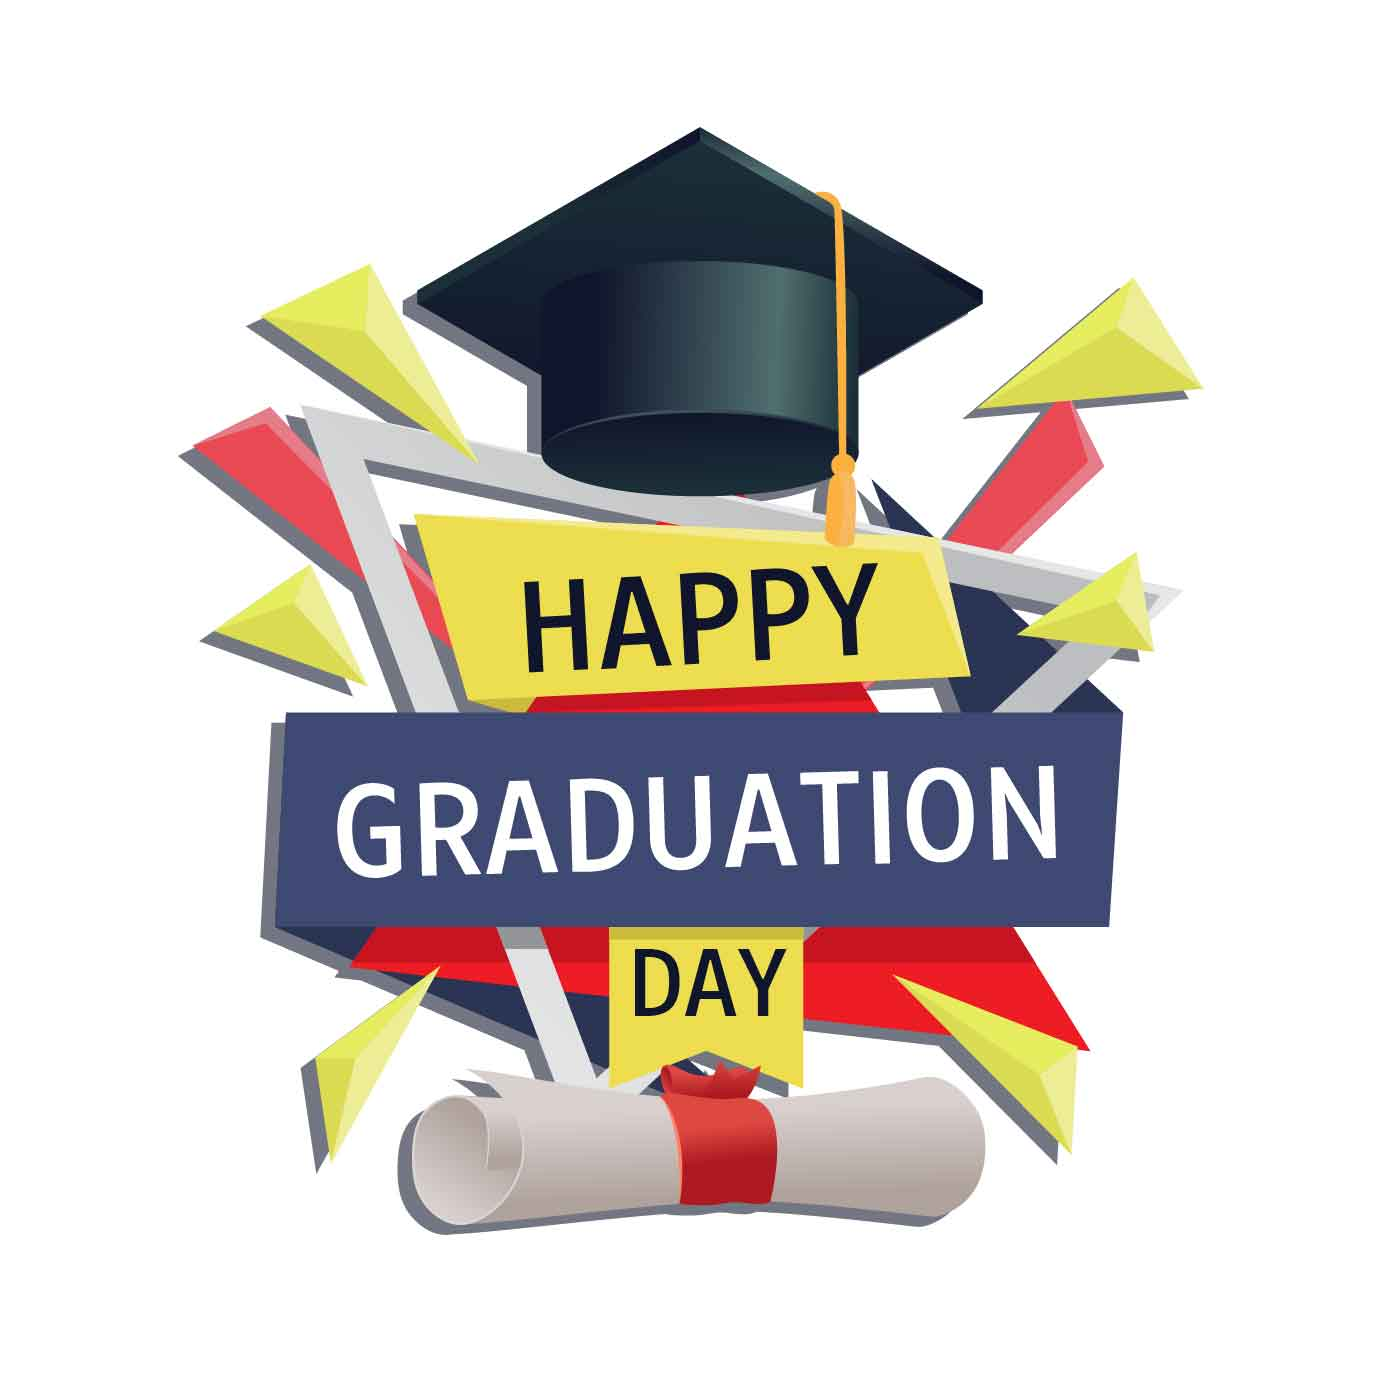 Graduation Party Free Vector Art 7070 Free Downloads